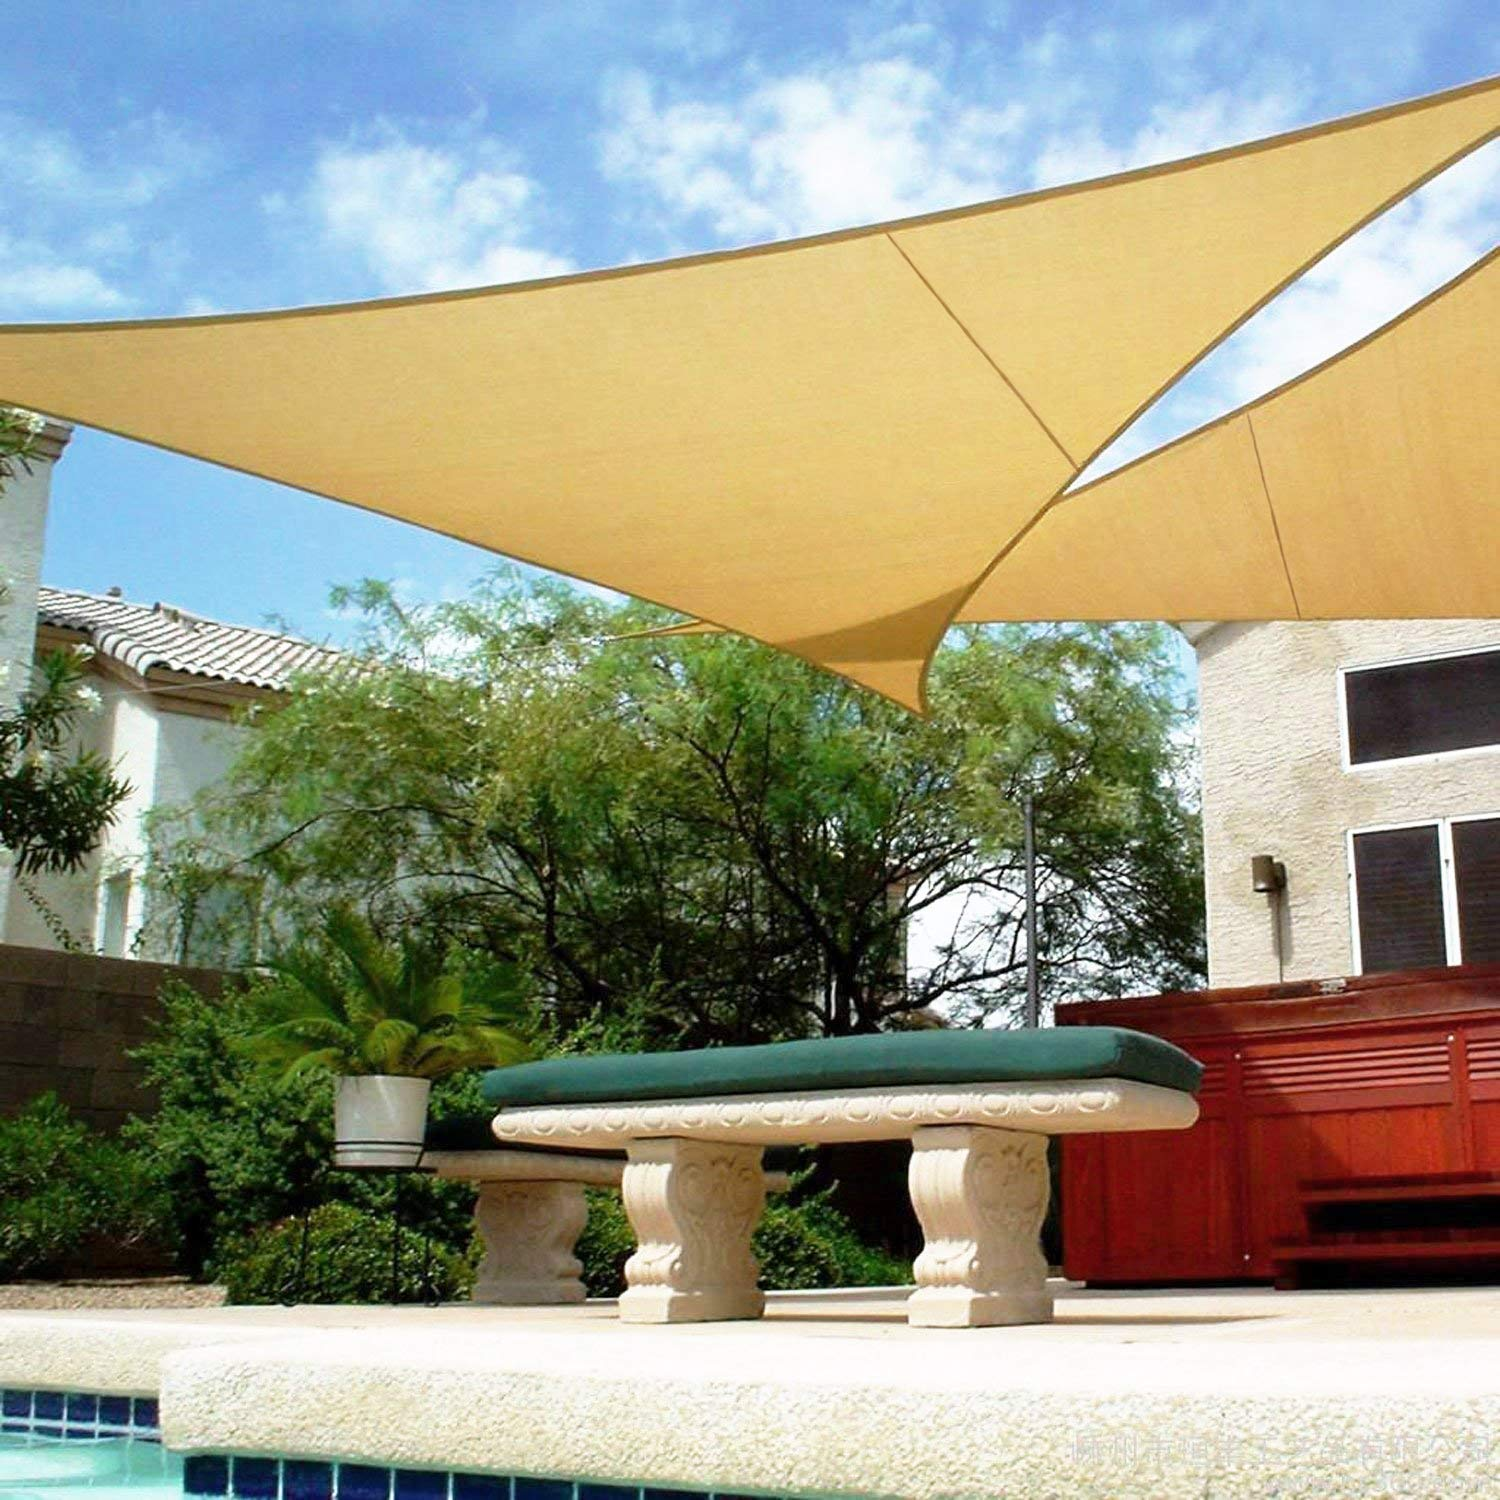 Shadeu0026Beyond Triangle Sun Shade Sail 16u0027 x 16u0027 x 16u0027 Canopy Sand for Patio Garden Yard Deck Pergola  sc 1 st  Amazon.com & Best sun tarps for patios | Amazon.com